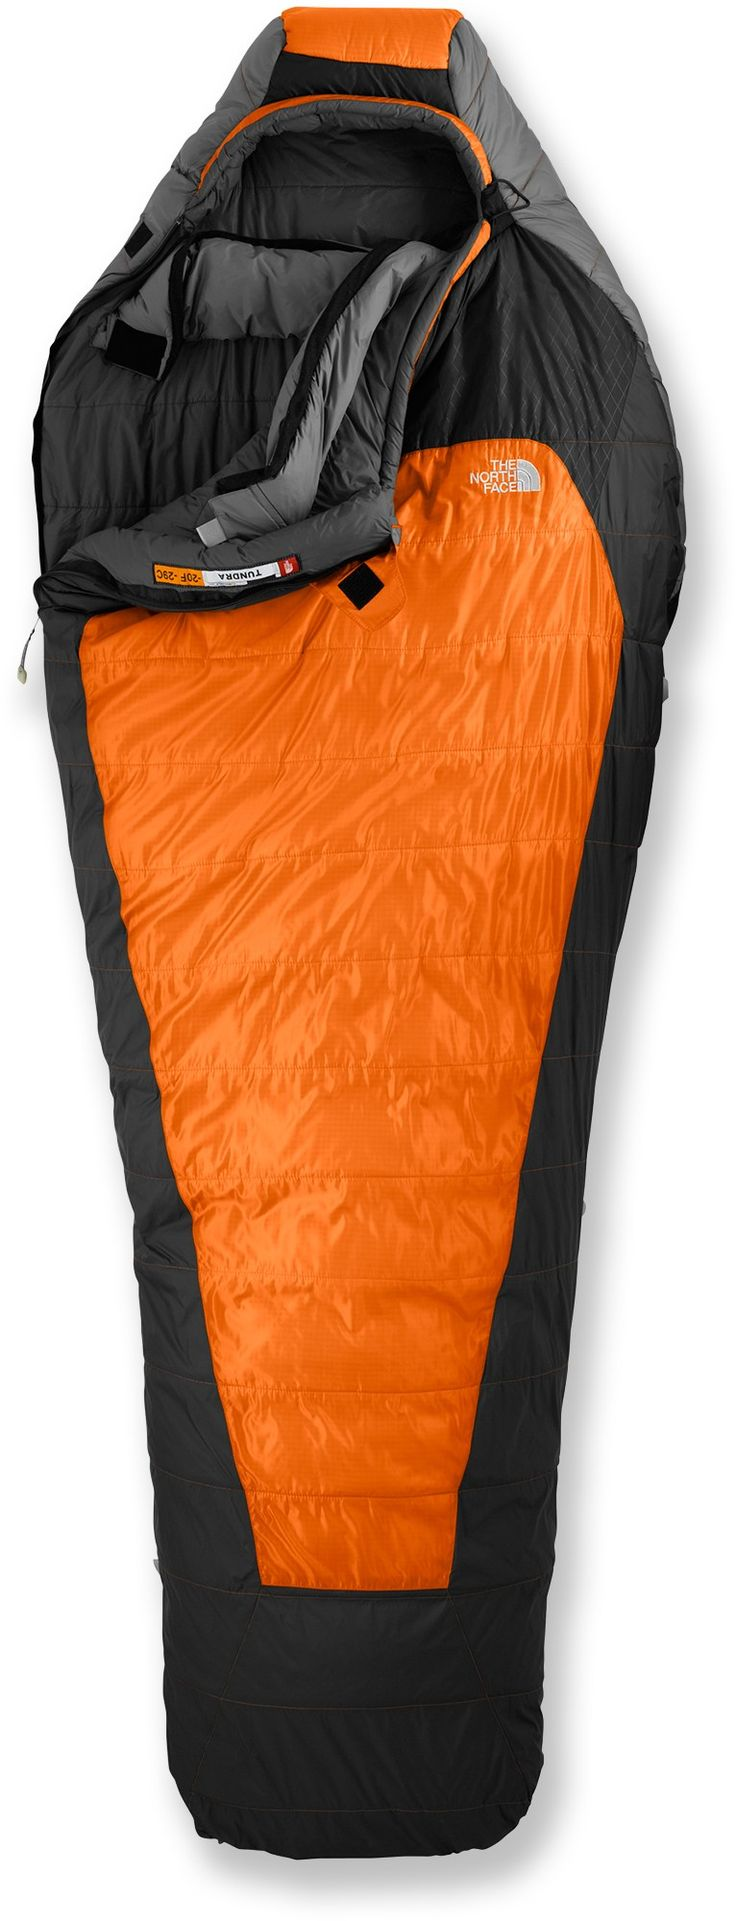 The North Face Tundra -20 Sleeping Bag